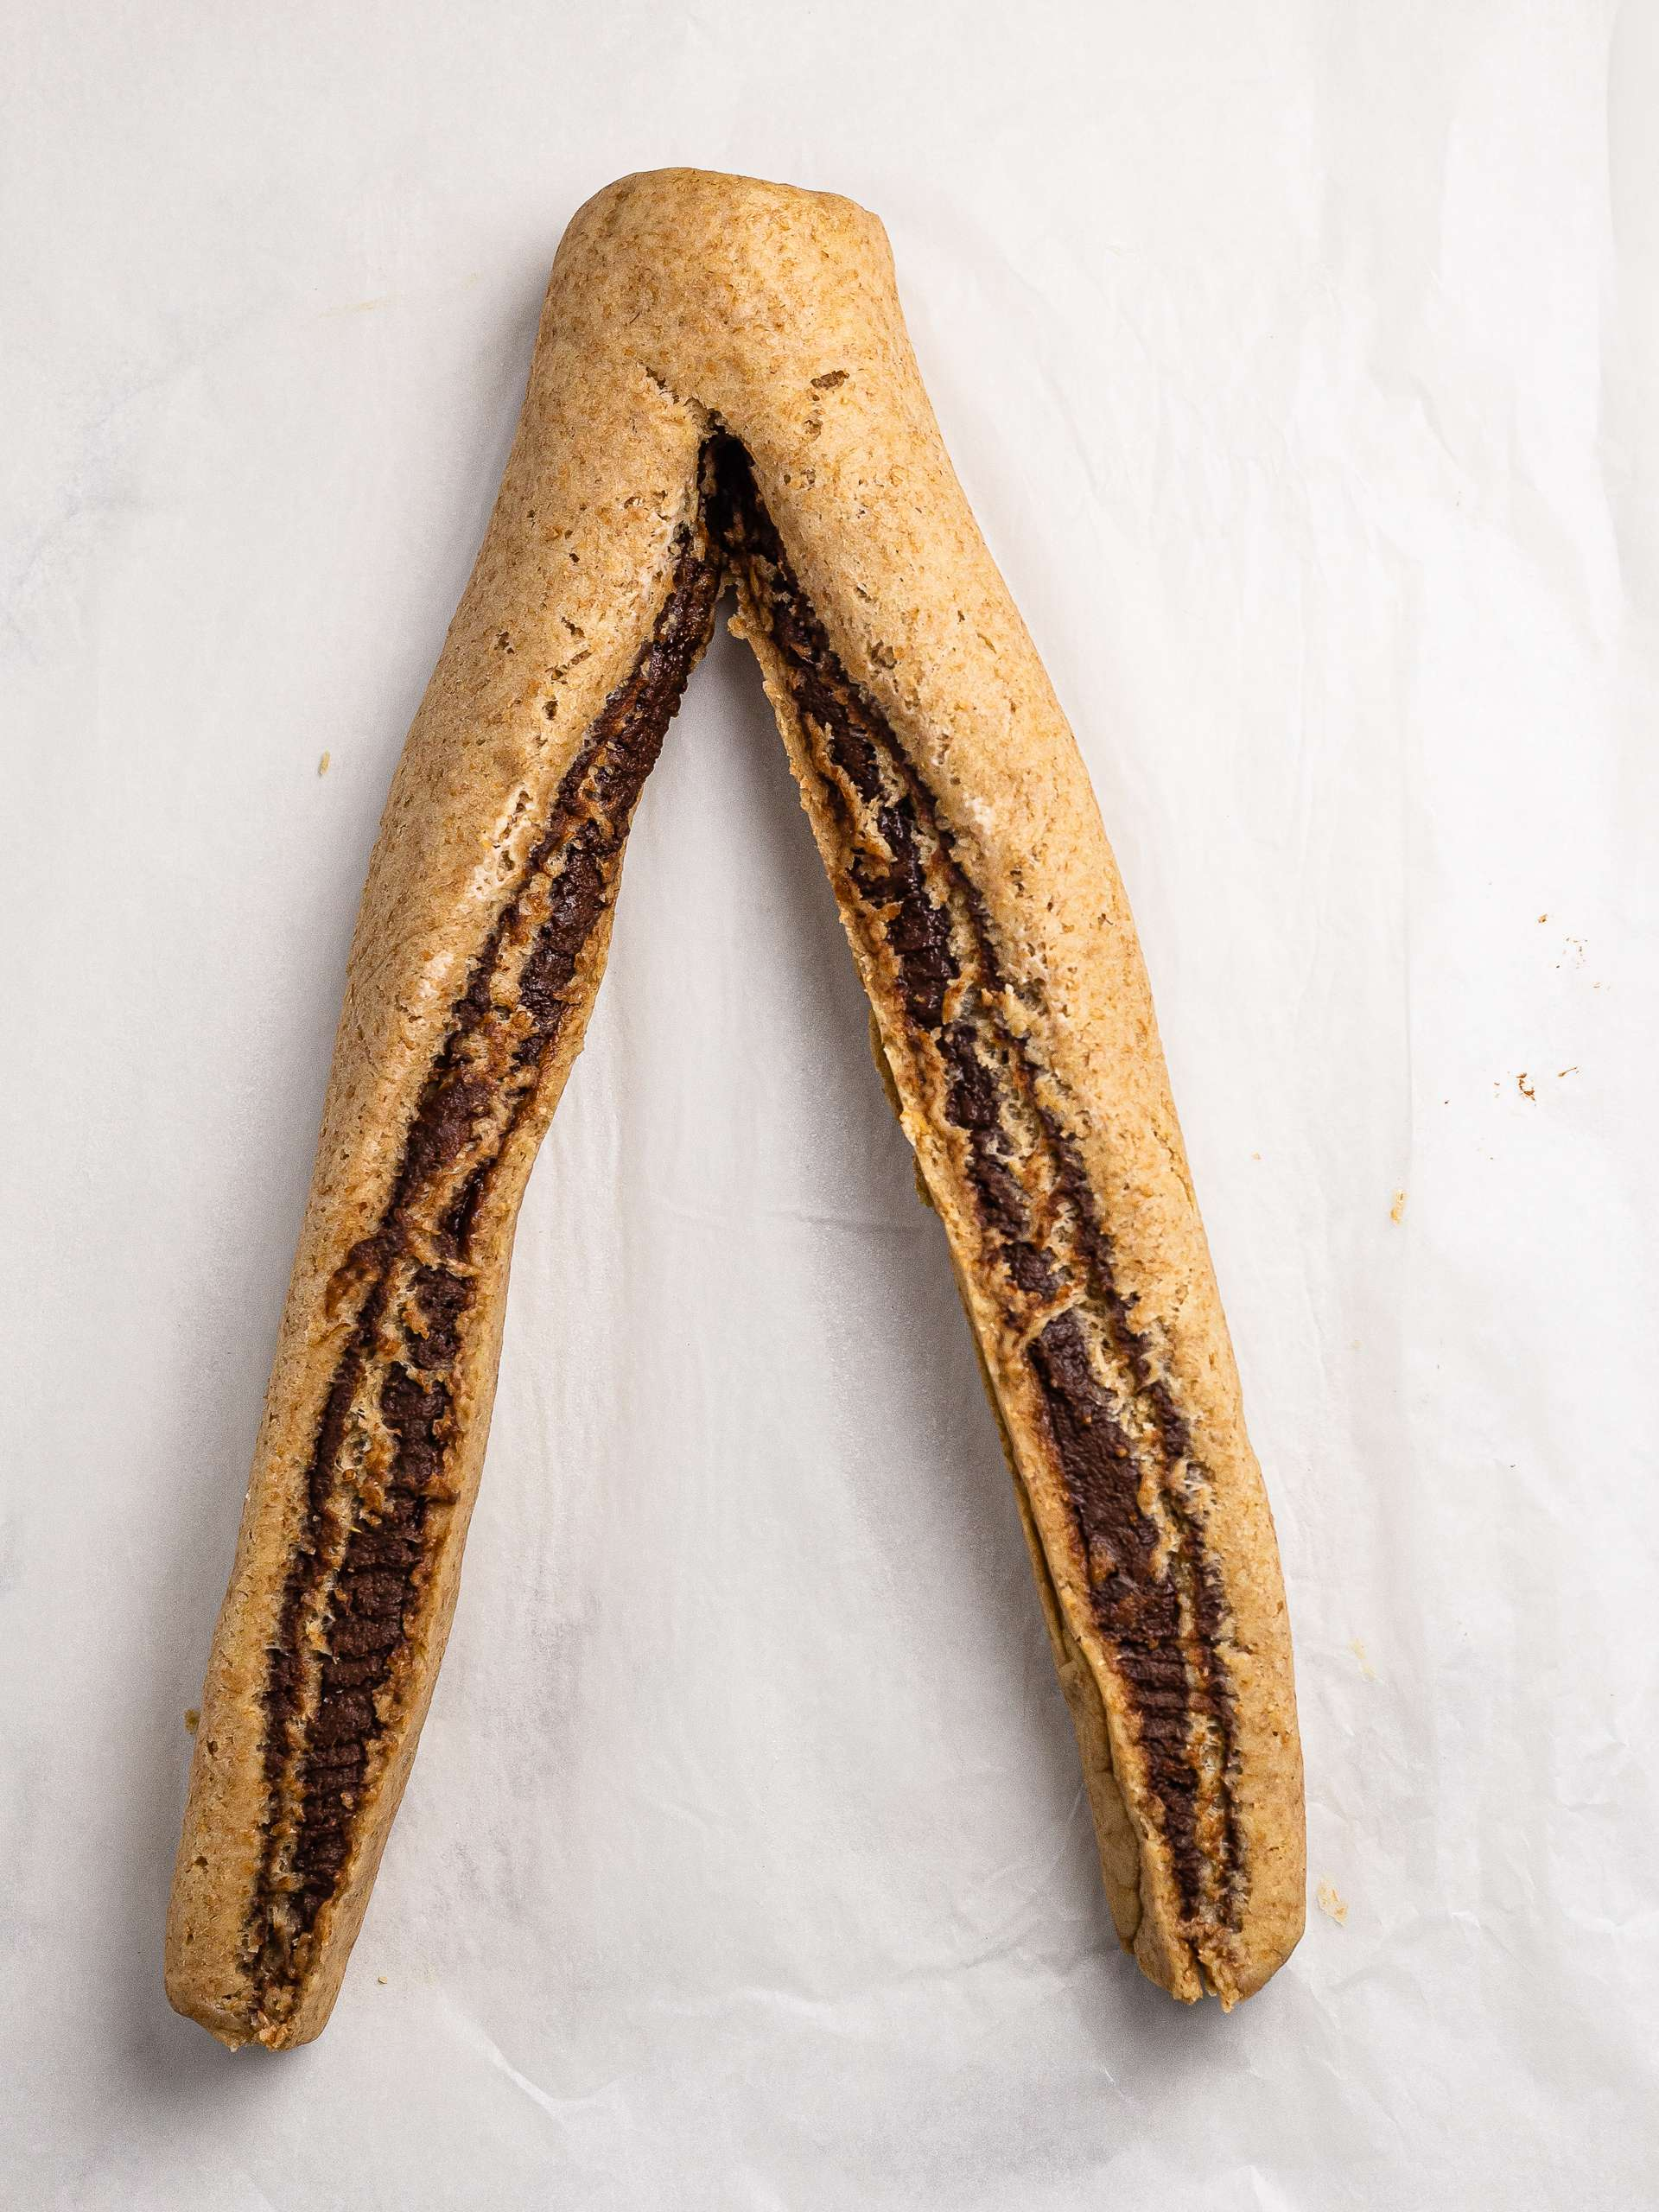 dough log sliced in half with the chocolate filling facing up